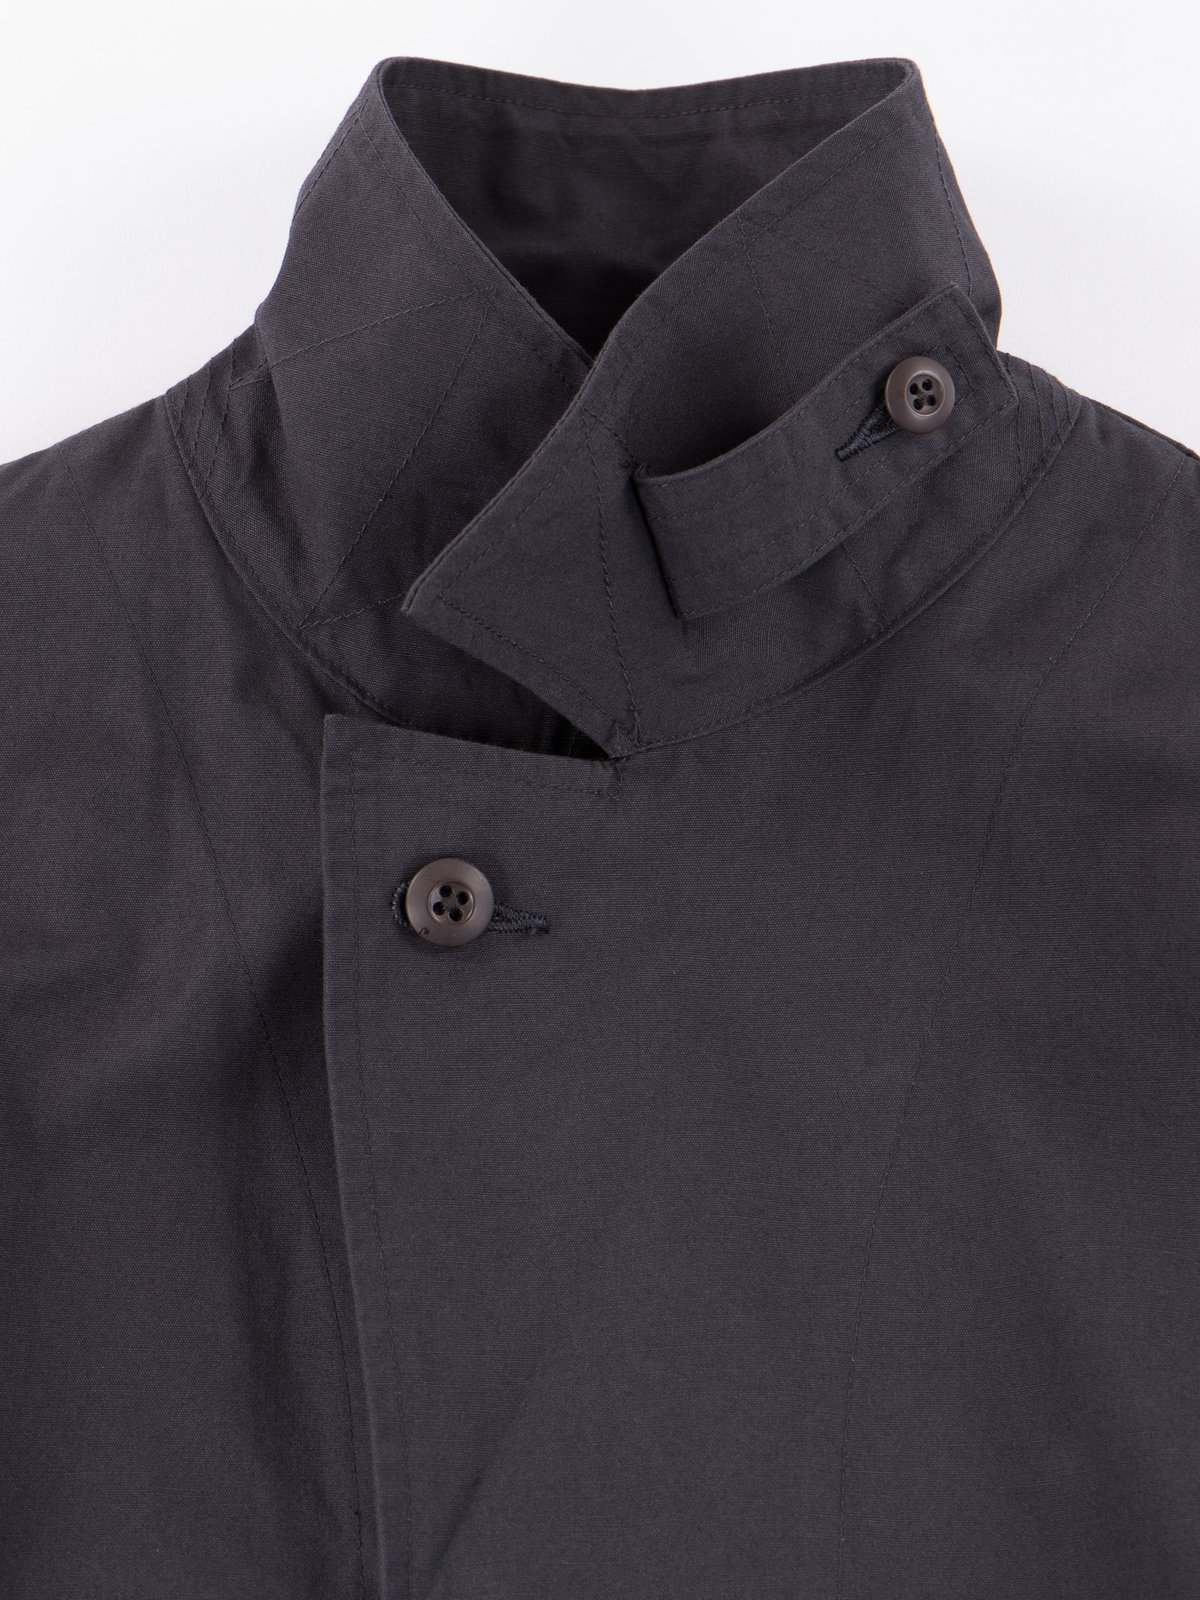 Fade Black Utility Coverall Jacket - Image 4